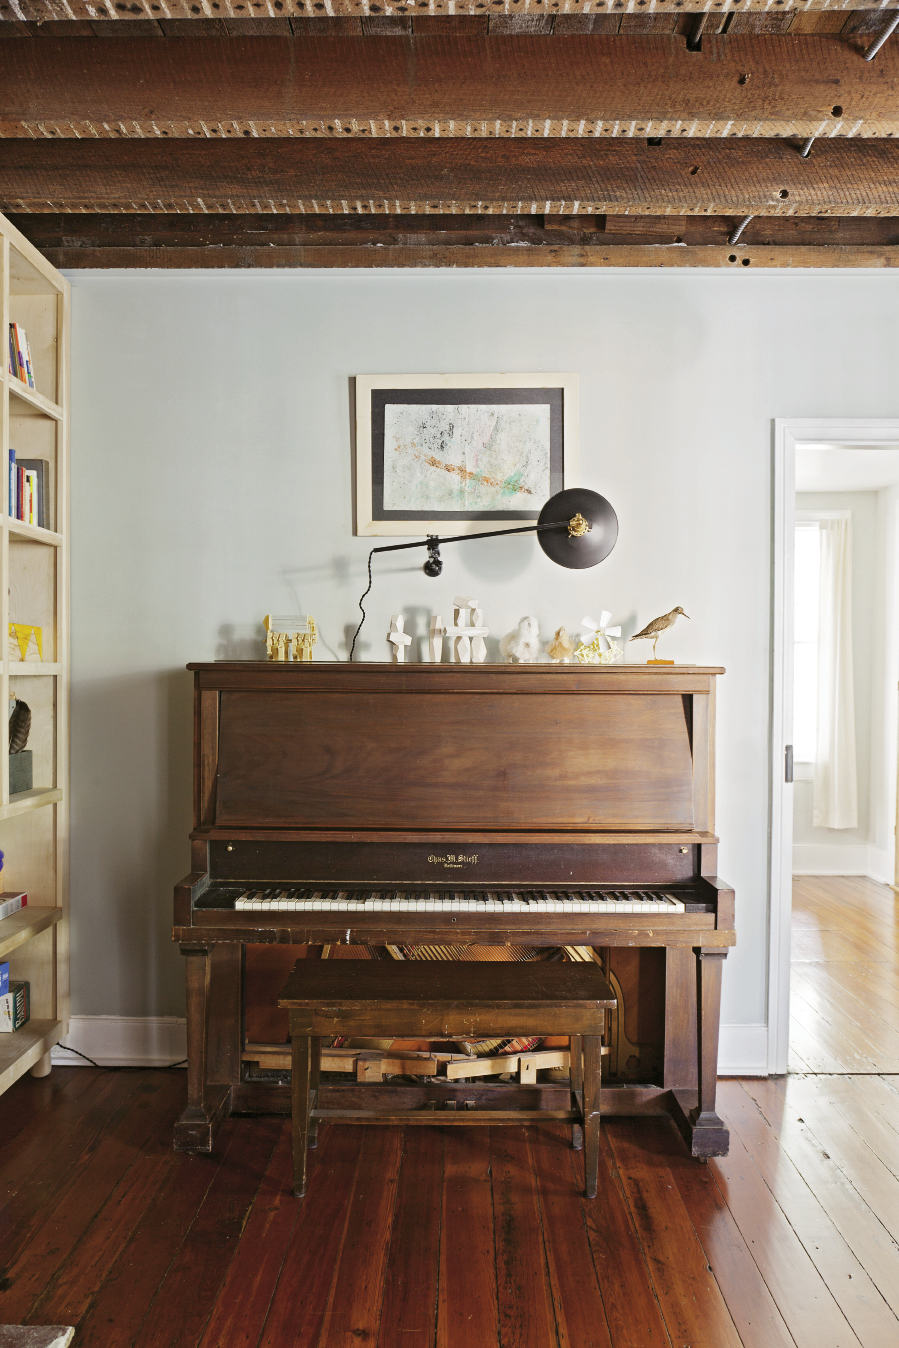 A piano found for $10 on Craigslist reflect the couple's resourcefulness.